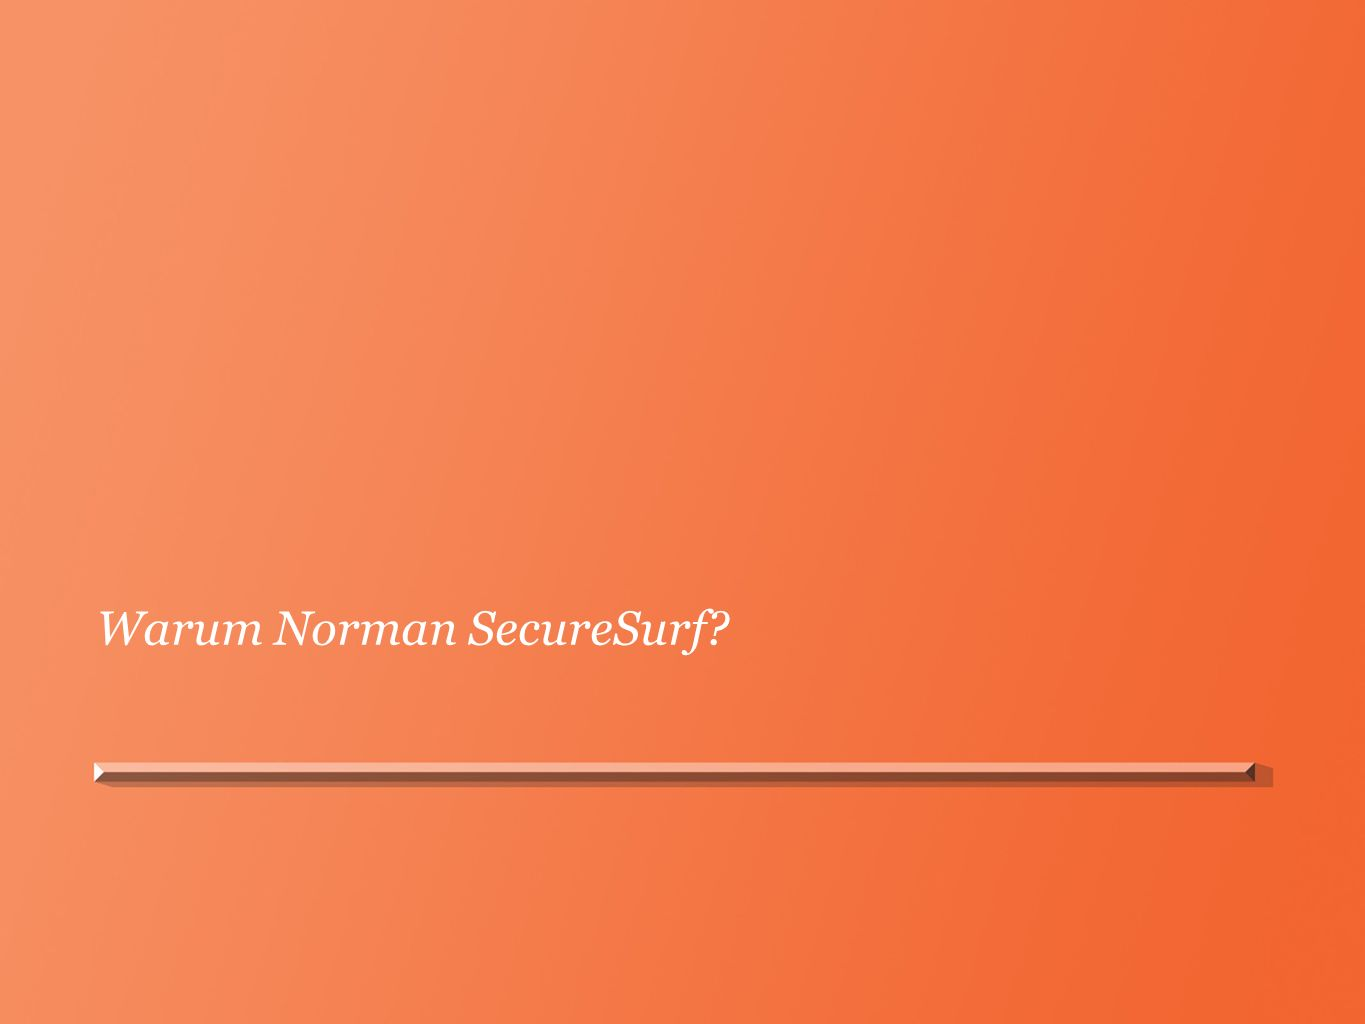 Warum Norman SecureSurf